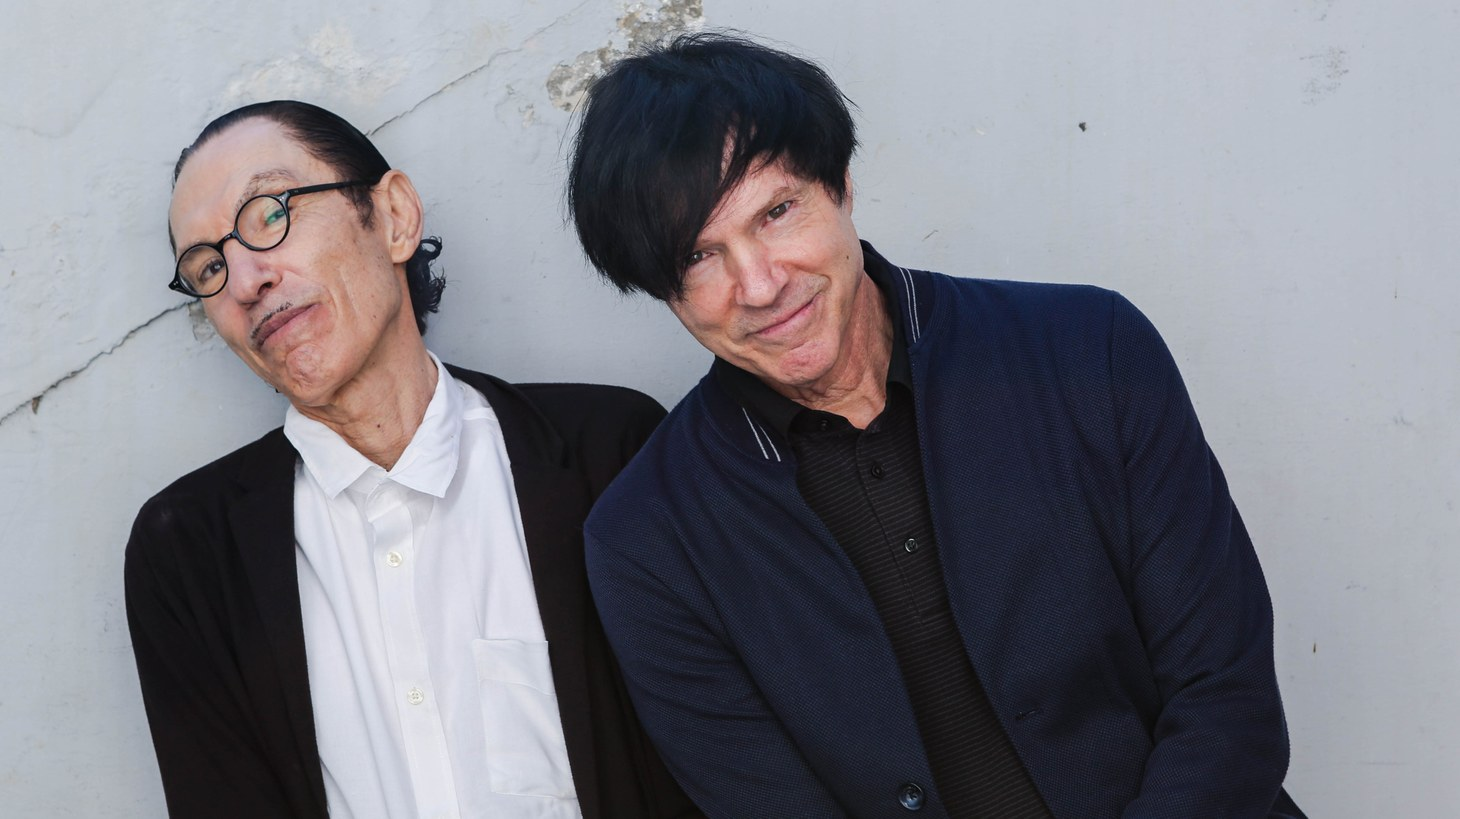 The second conversation with brothers Ron and Russell Mael of the band Sparks, along with stripped-down versions of two songs from their new album Hippopotamus.